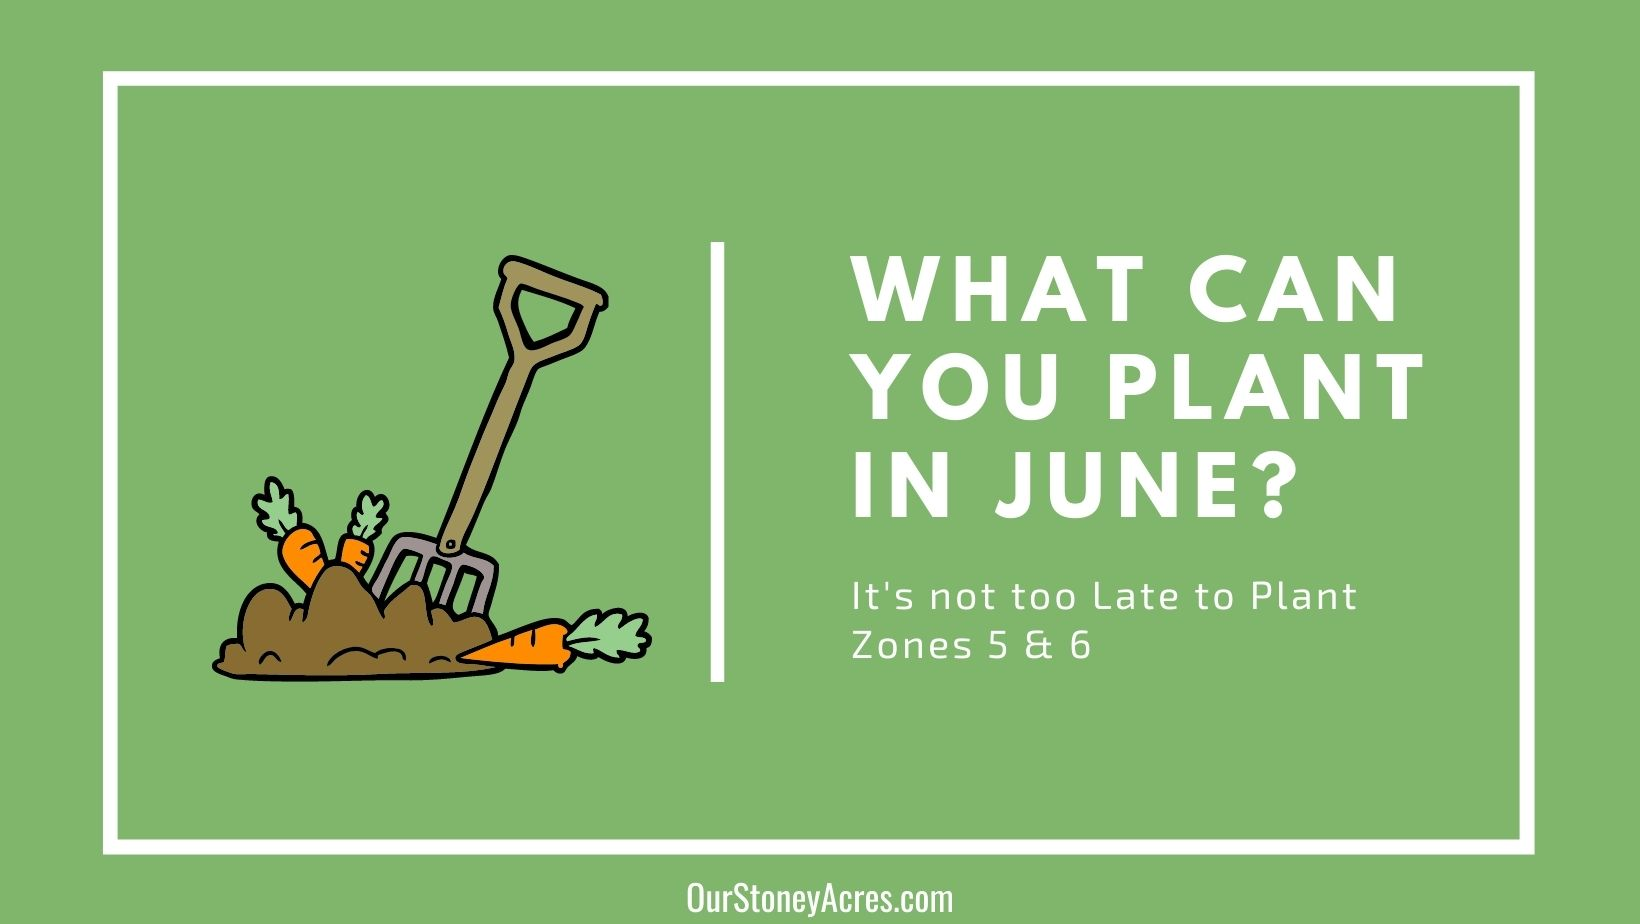 What can you plant in June